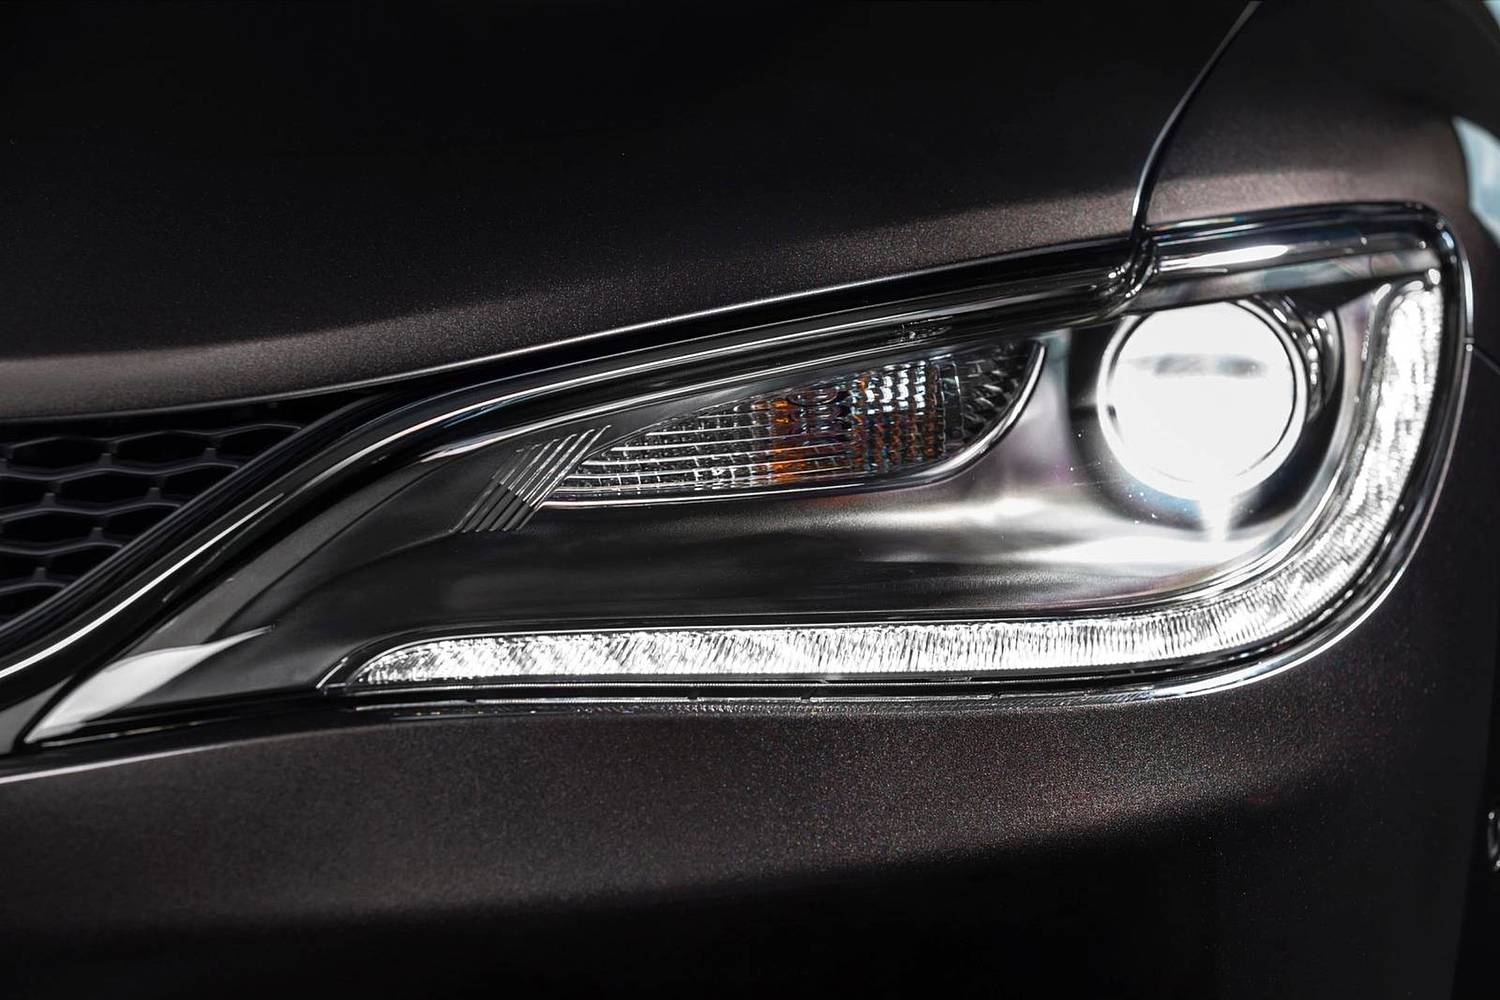 Chrysler 200 C Sedan Headlamp Detail (2015 model year shown)